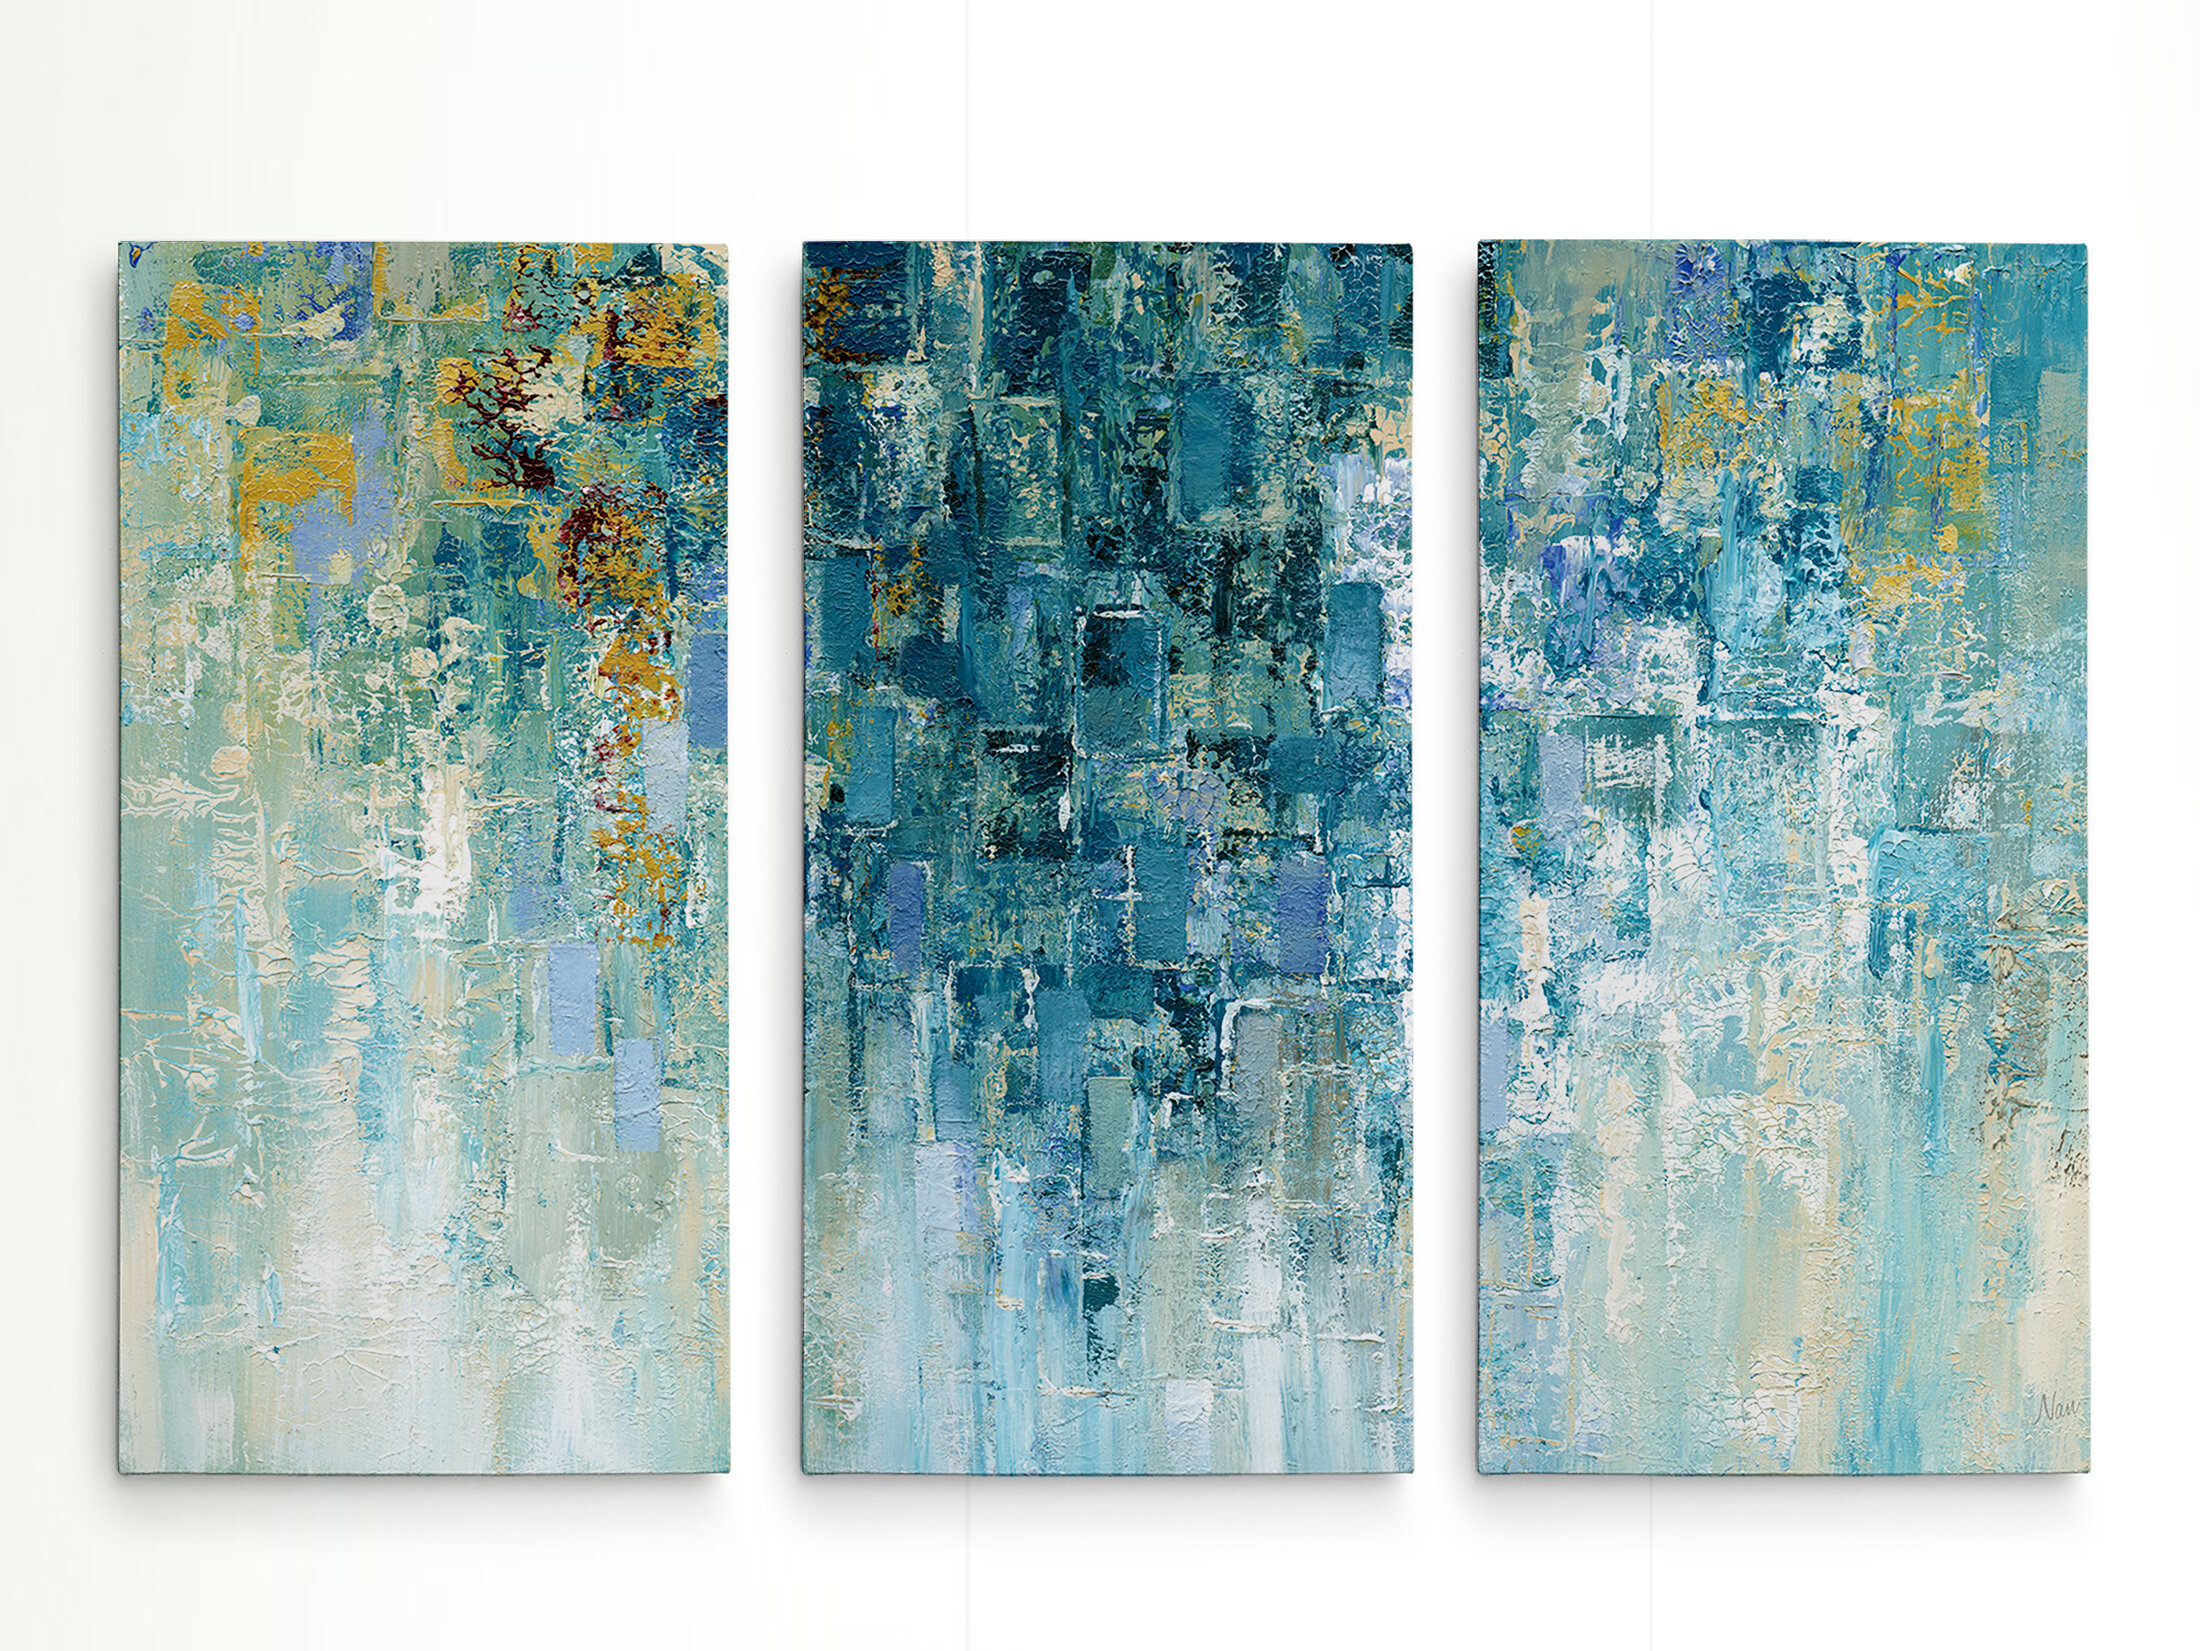 I Love The Rain Acrylic Painting Print Multi Piece Image On Gallery Wred Canvas